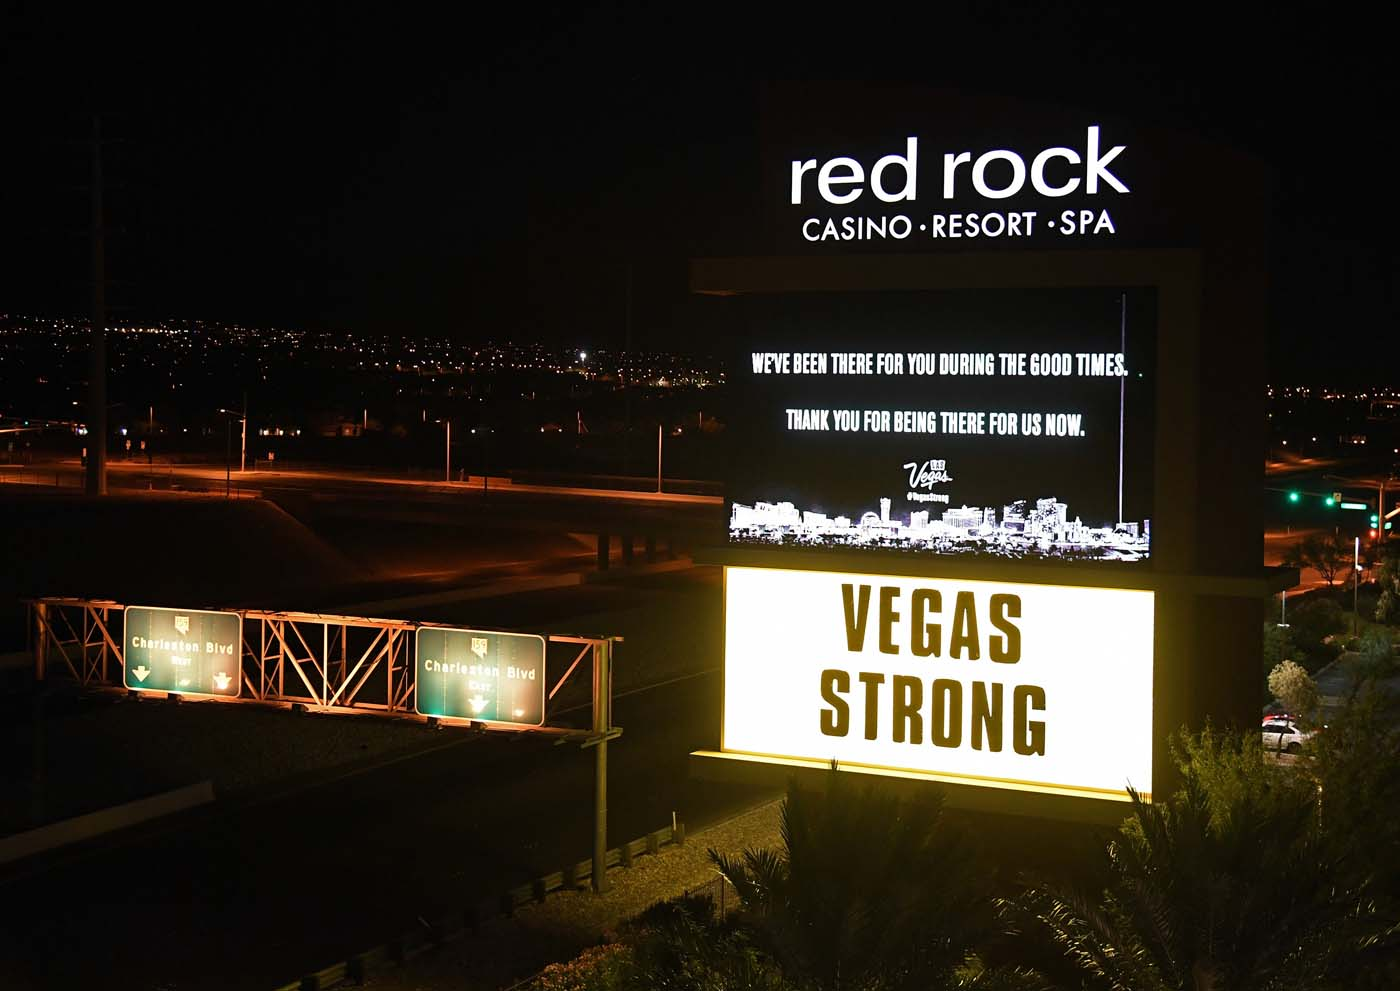 LAS VEGAS, NV - OCTOBER 04: A marquee at the Red Rock Resort displays a message of gratitude in response to Sunday night's mass shooting at a music festival, on October 4, 2017 in Las Vegas, Nevada. Hotel-casinos in Las Vegas replaced their usual flashy marquee advertisements with the same message of condolence as a show of strength in reaction to the violence. Late Sunday night, a lone gunman killed at least 59 people and injured more than 500 after he opened fire on a large crowd at the Route 91 Harvest country music festival. The massacre is one of the deadliest mass shooting events in U.S. history. Ethan Miller/Getty Images/AFP